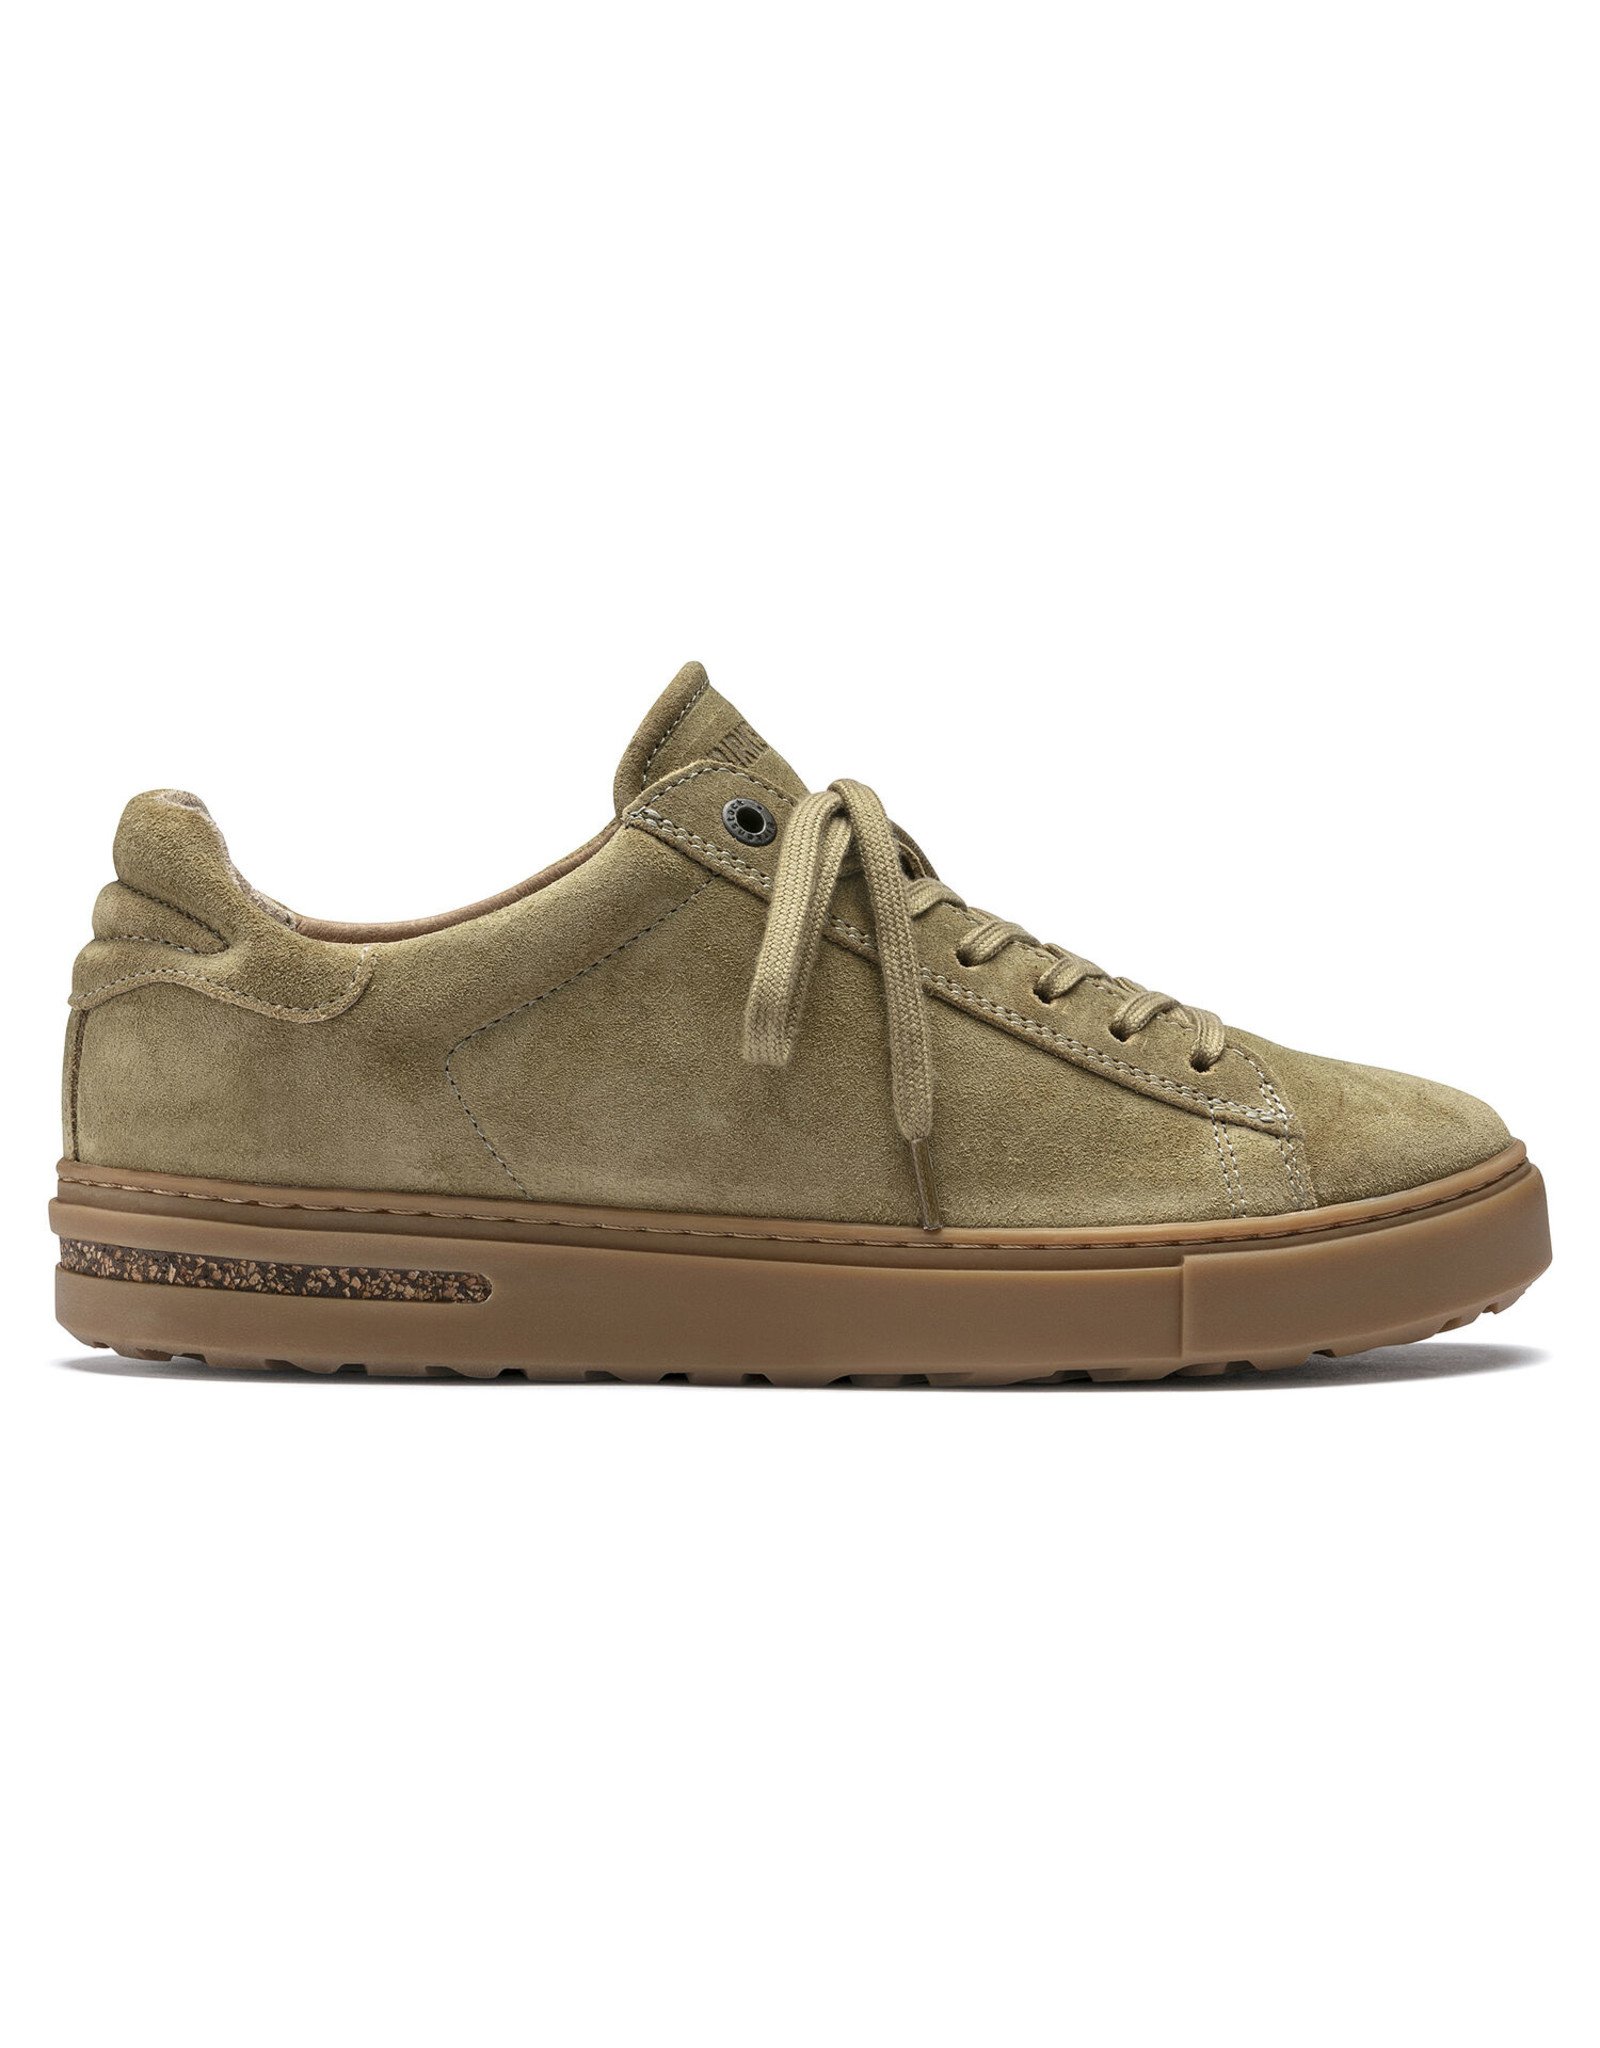 BIRKENSTOCK BEND SUEDE LEATHER-KHAKI